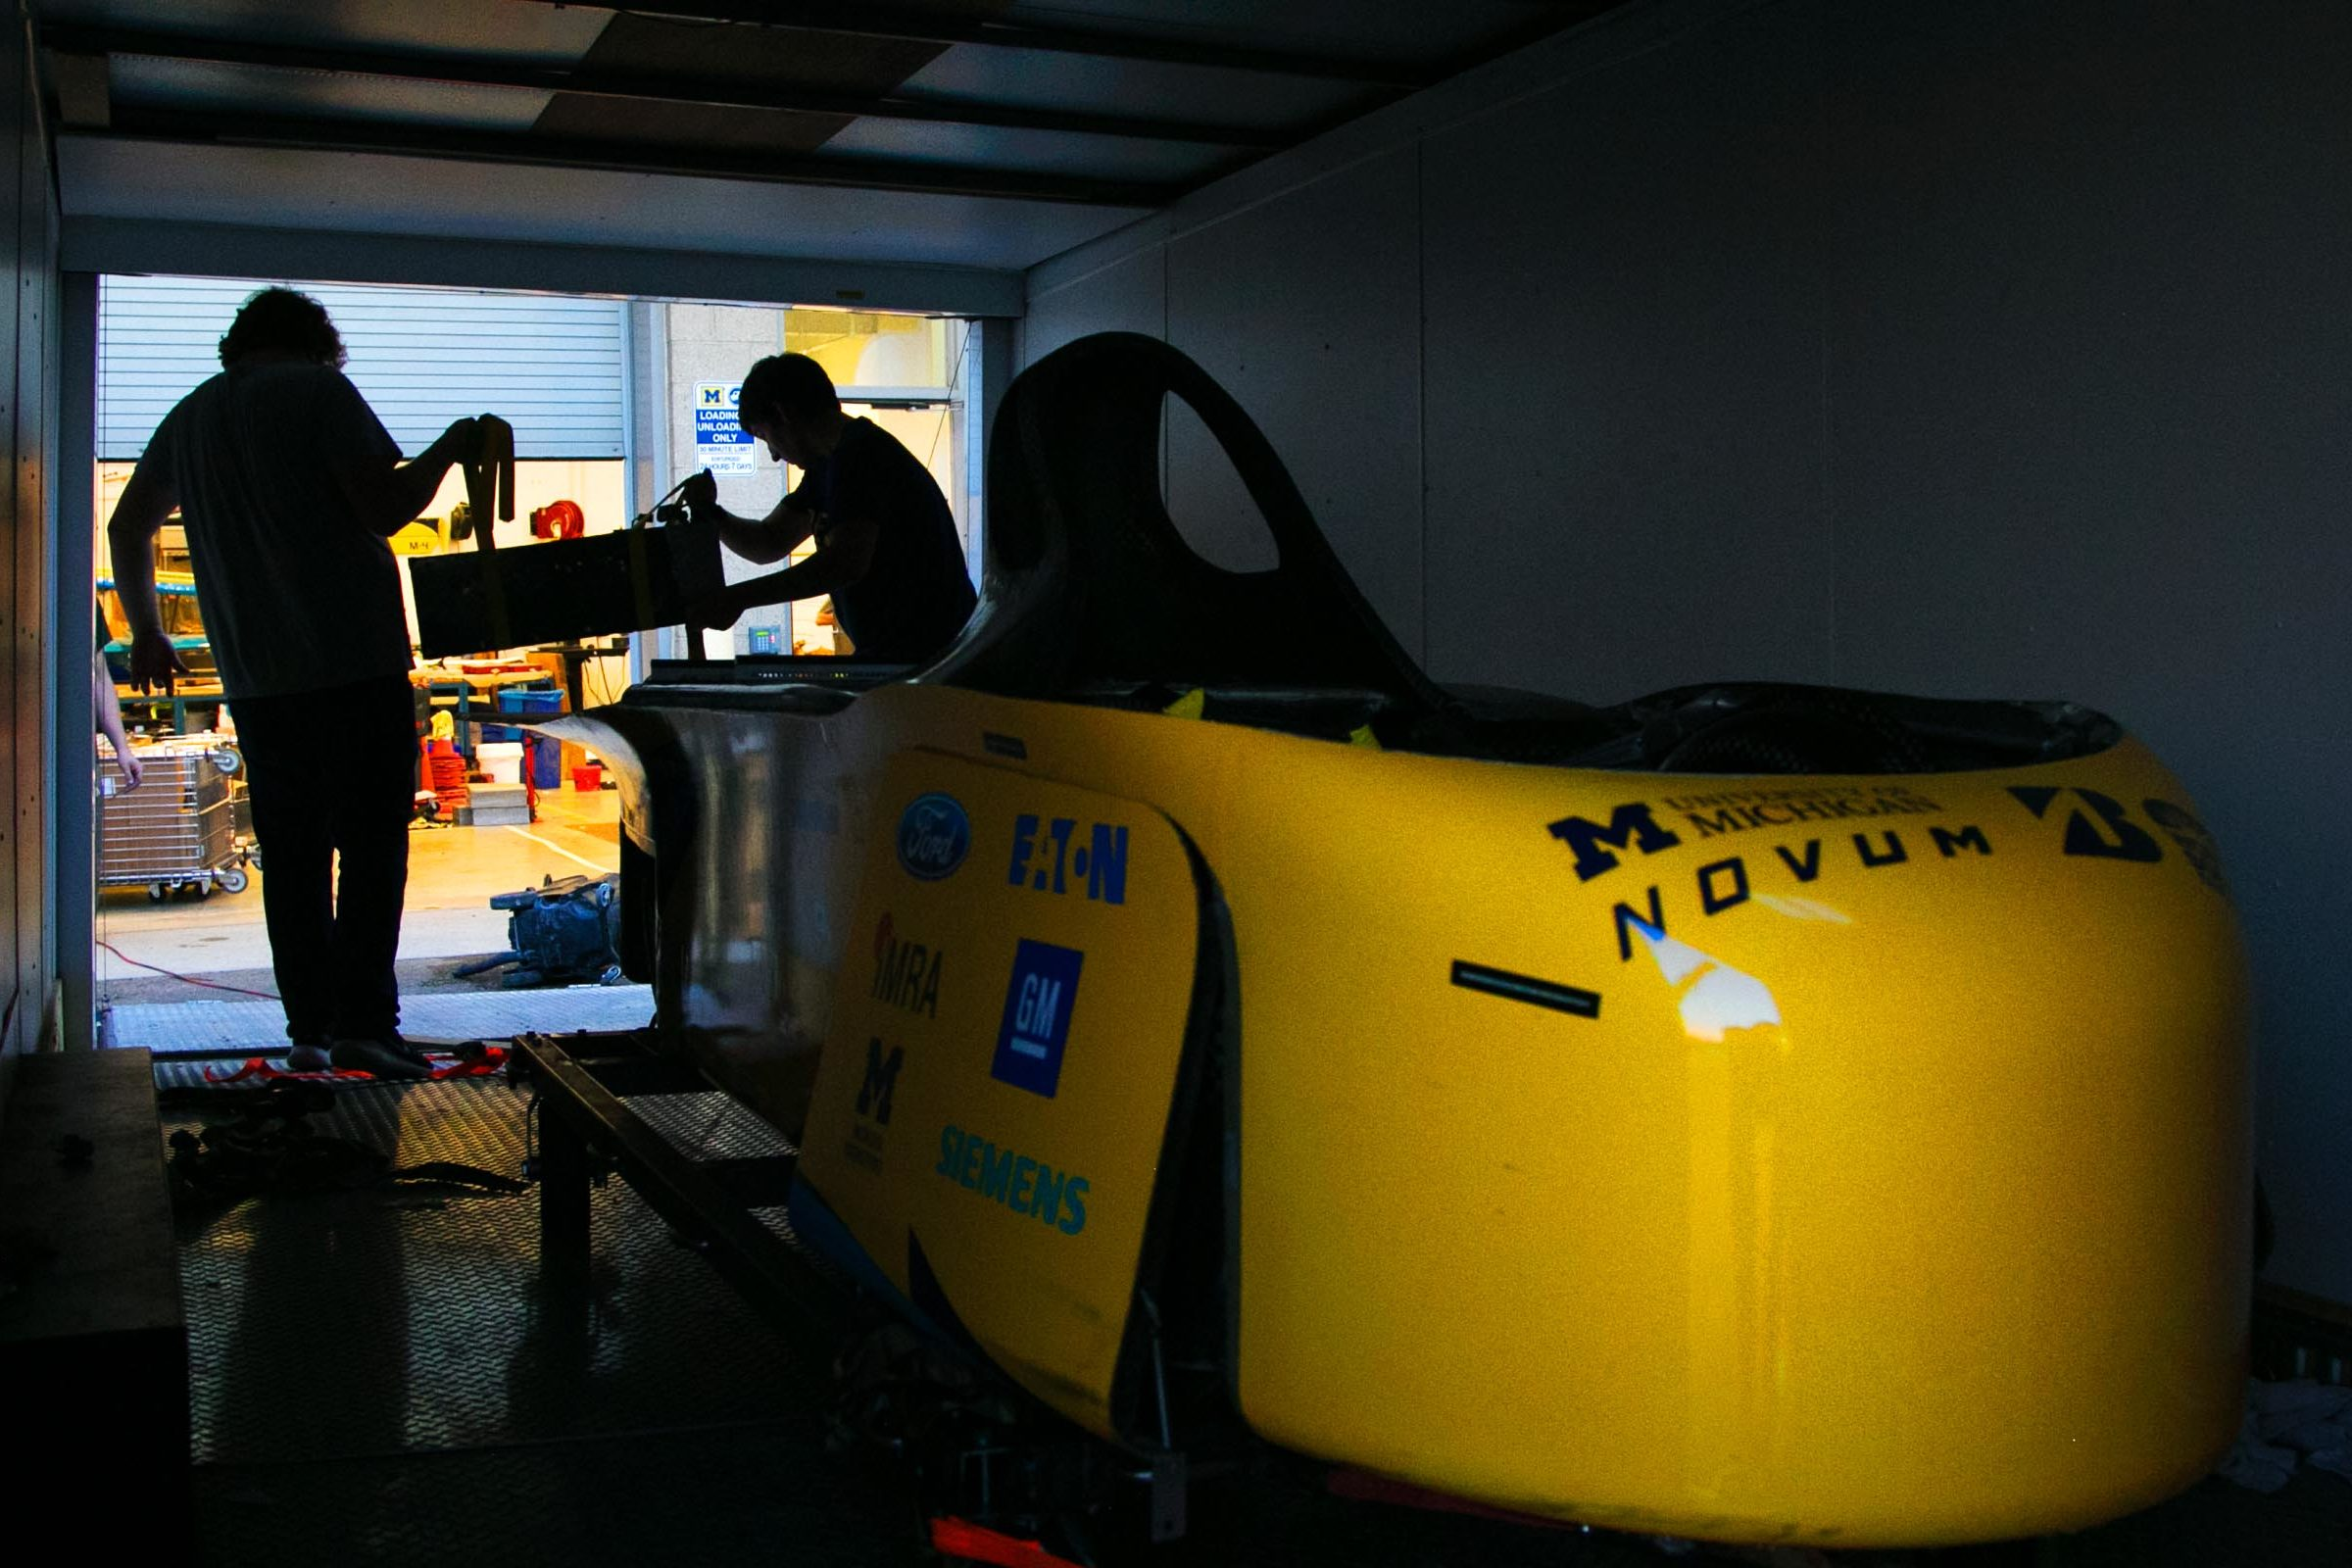 Solar car inside shipping container.